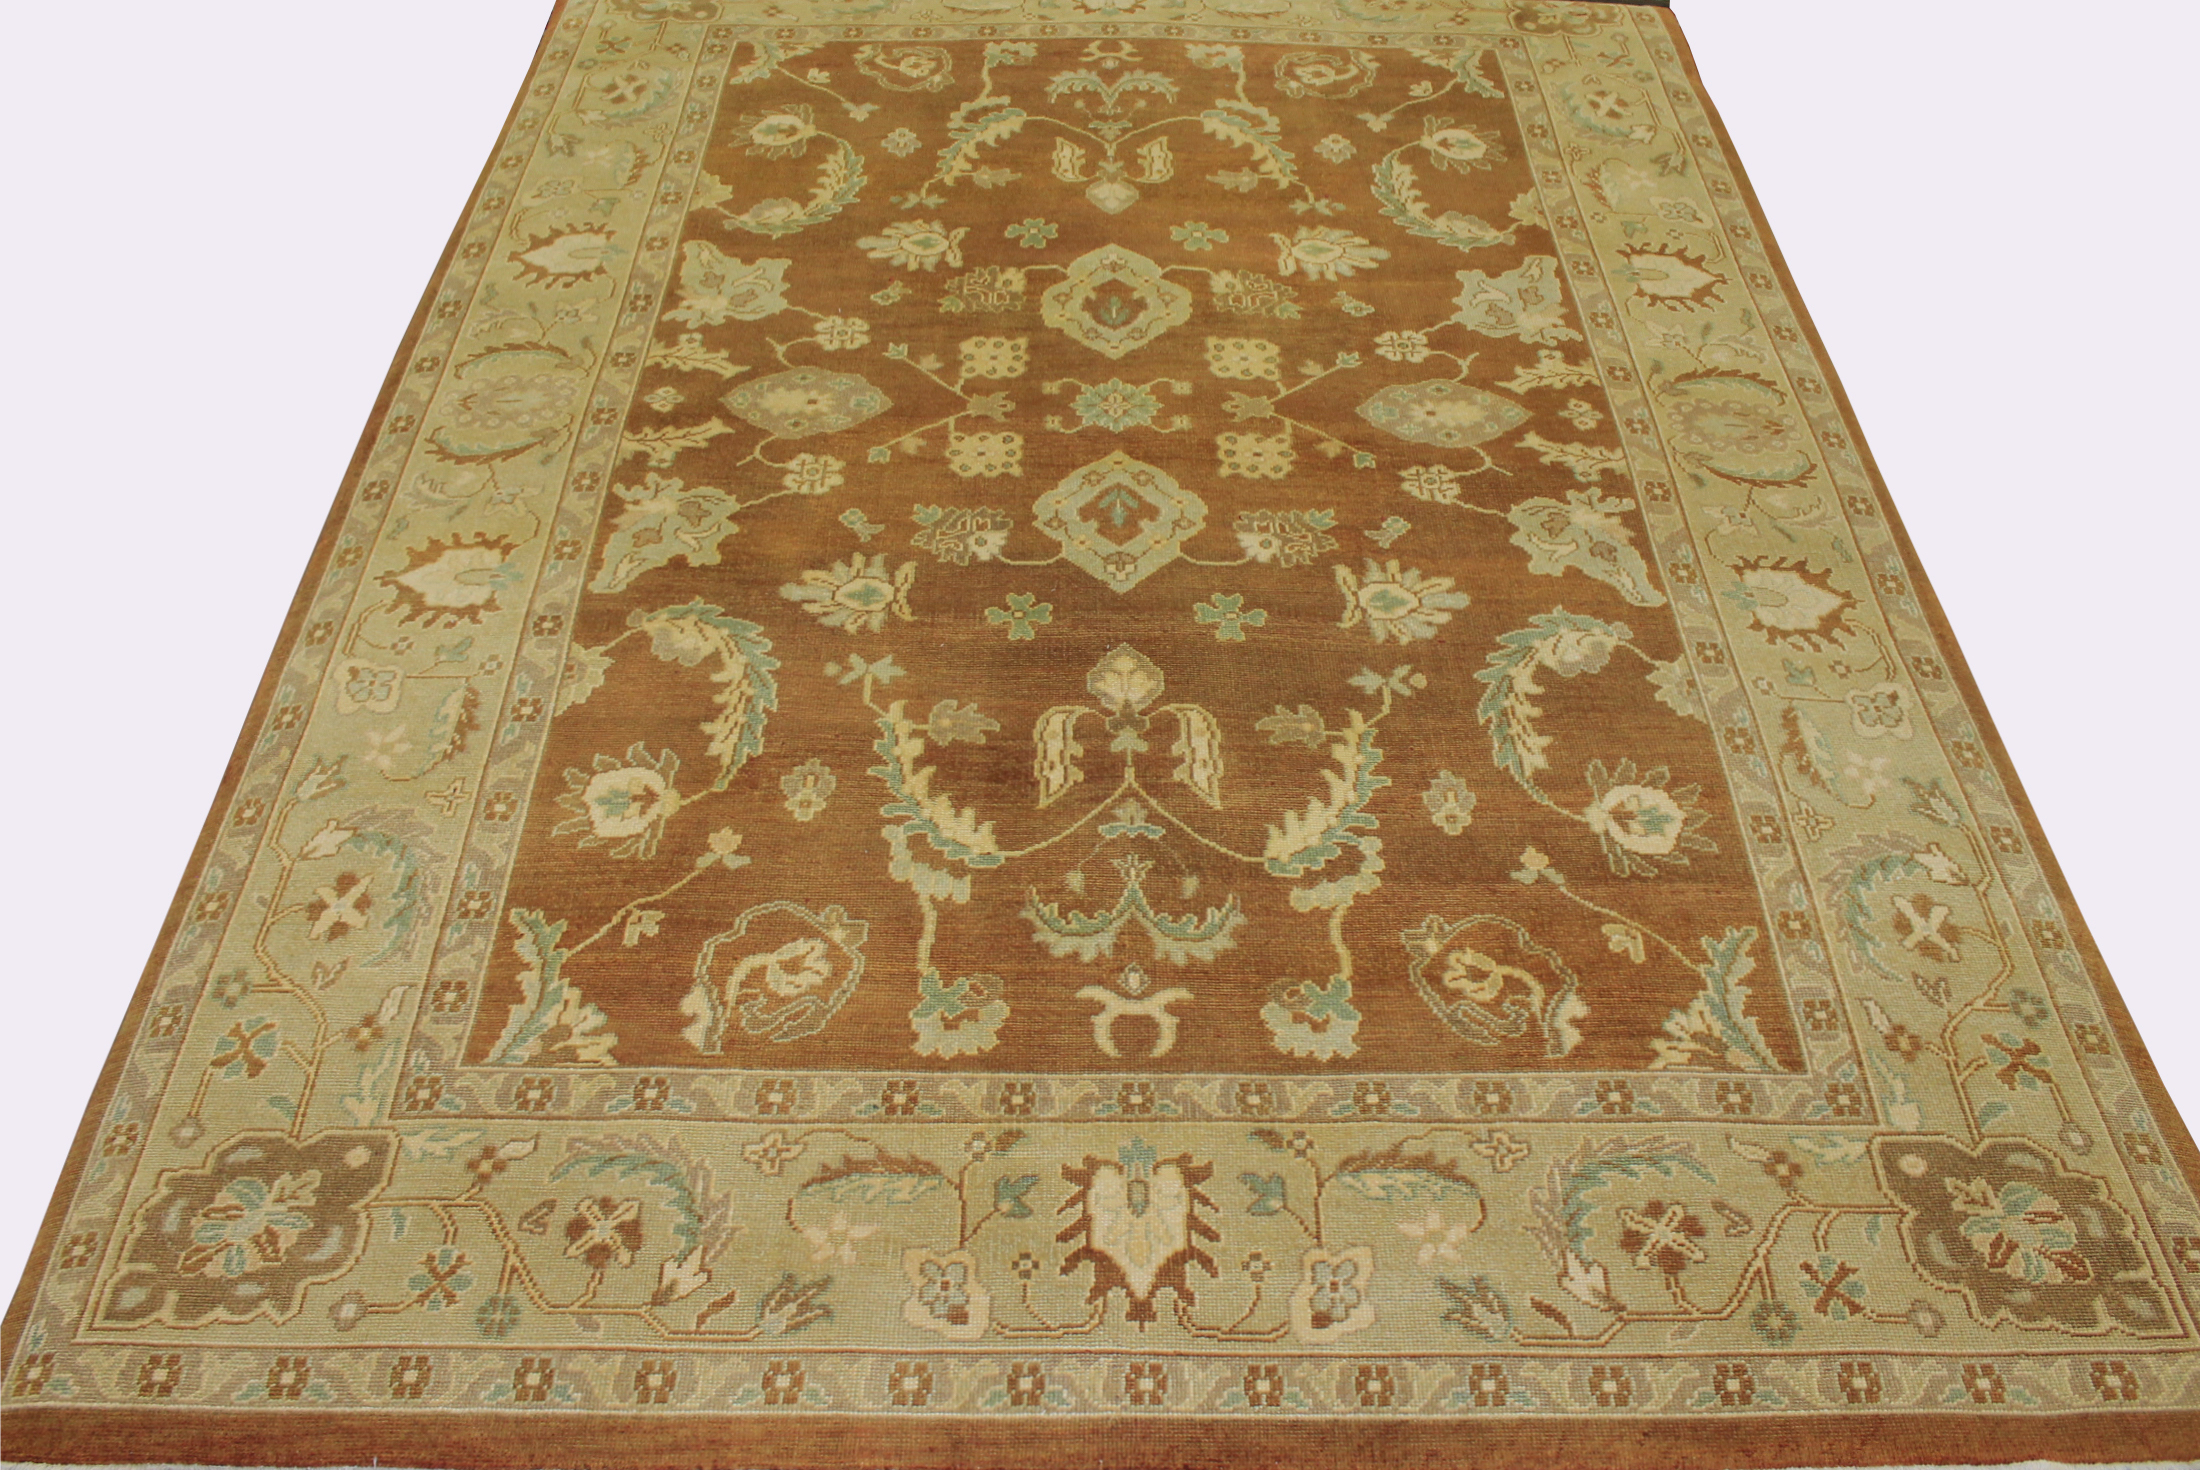 9x12 Oushak Hand Knotted Wool Area Rug - MR10020